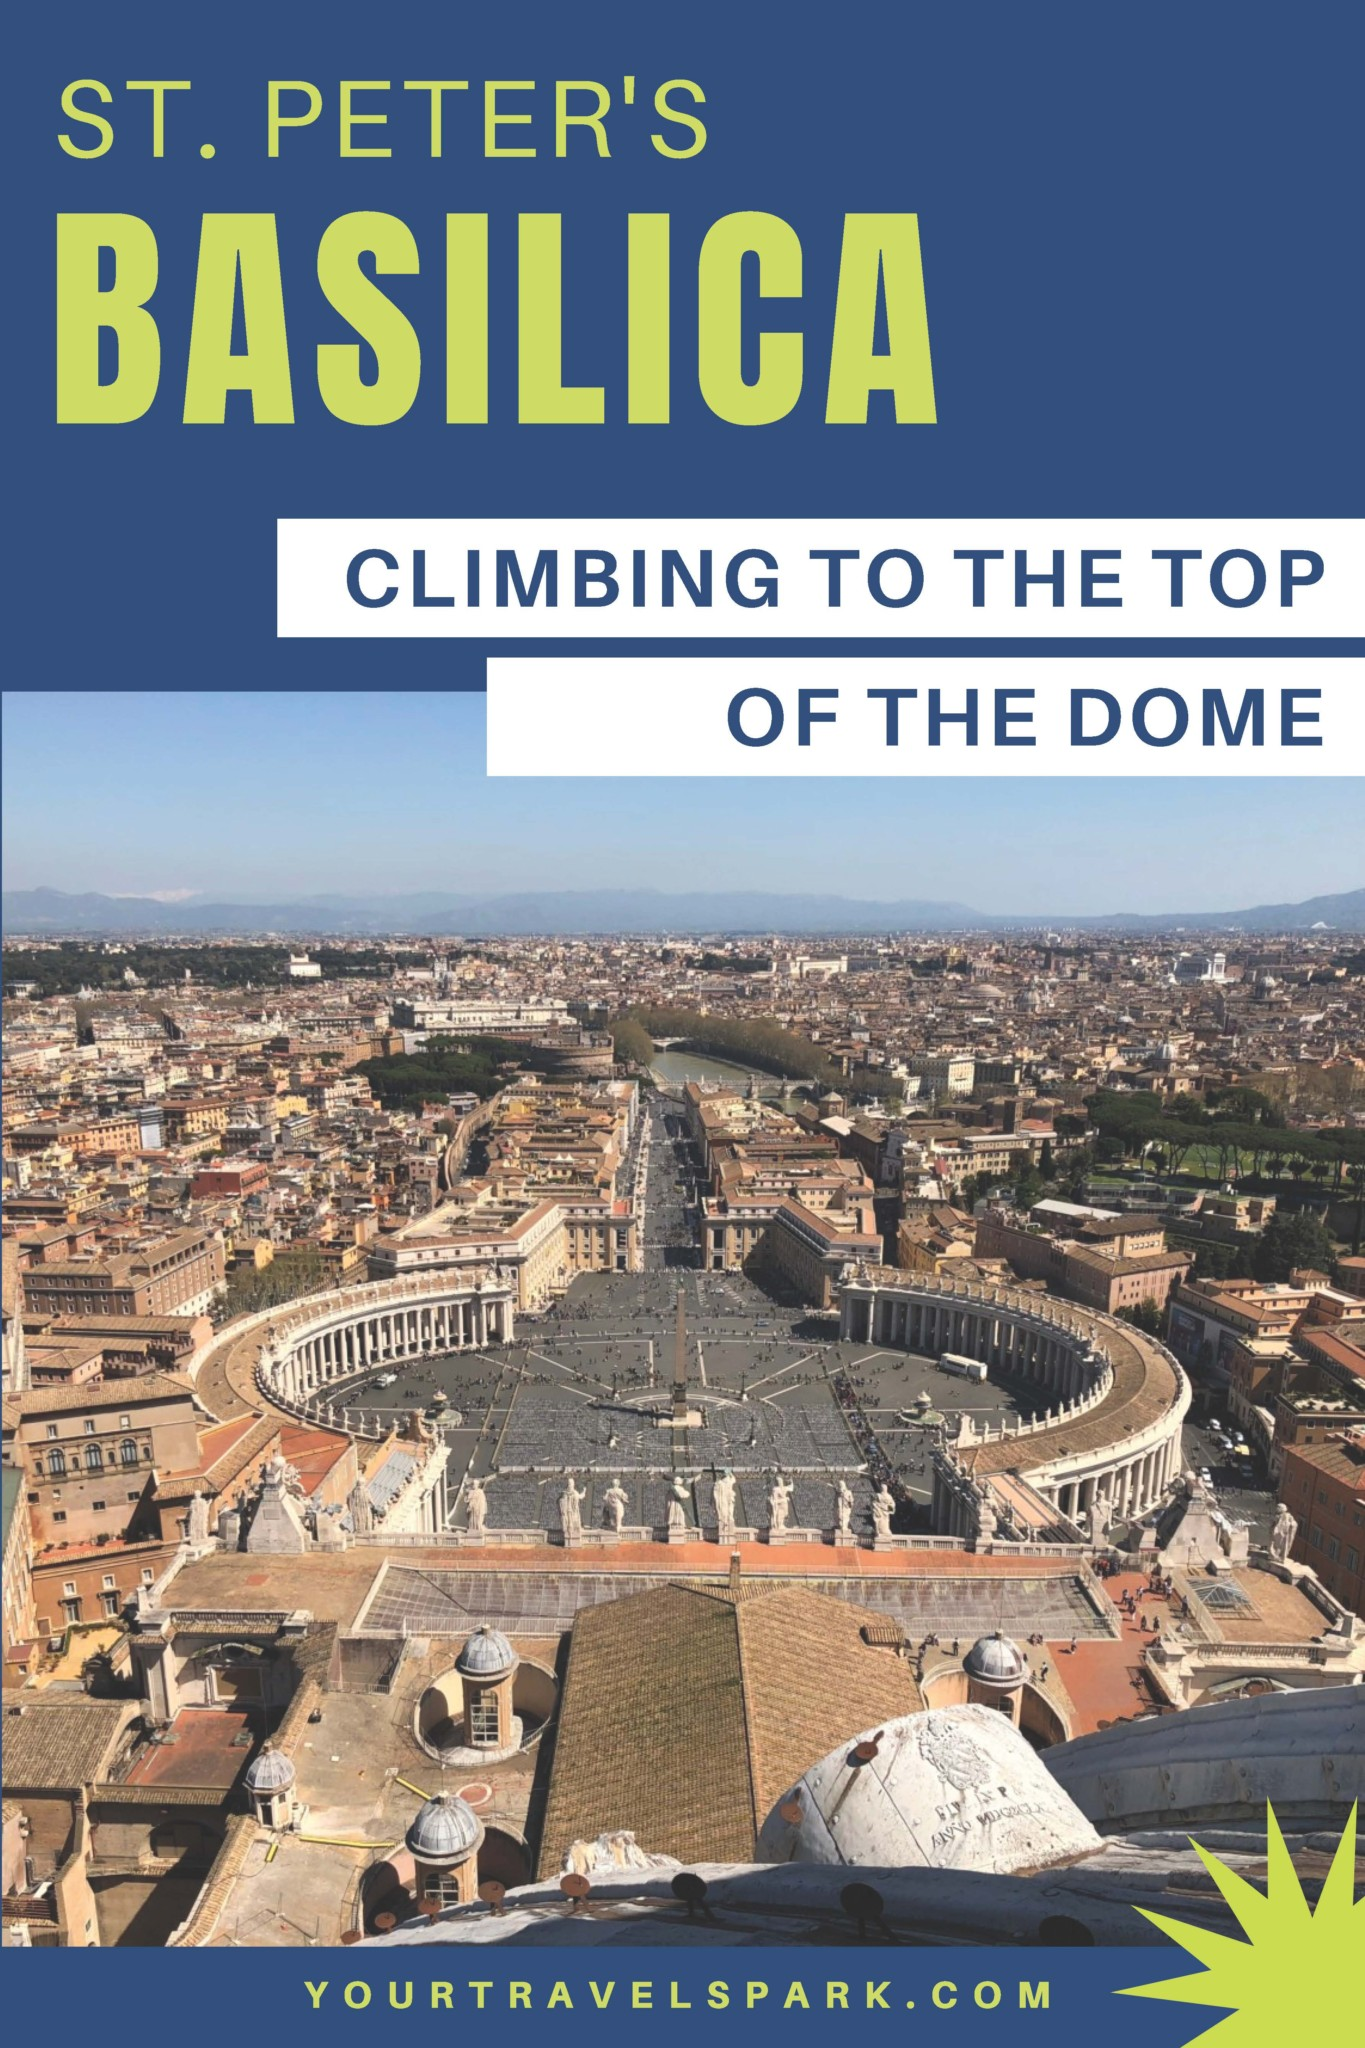 When visiting the Vatican, make sure to climb St. Peter's Basilica Dome.